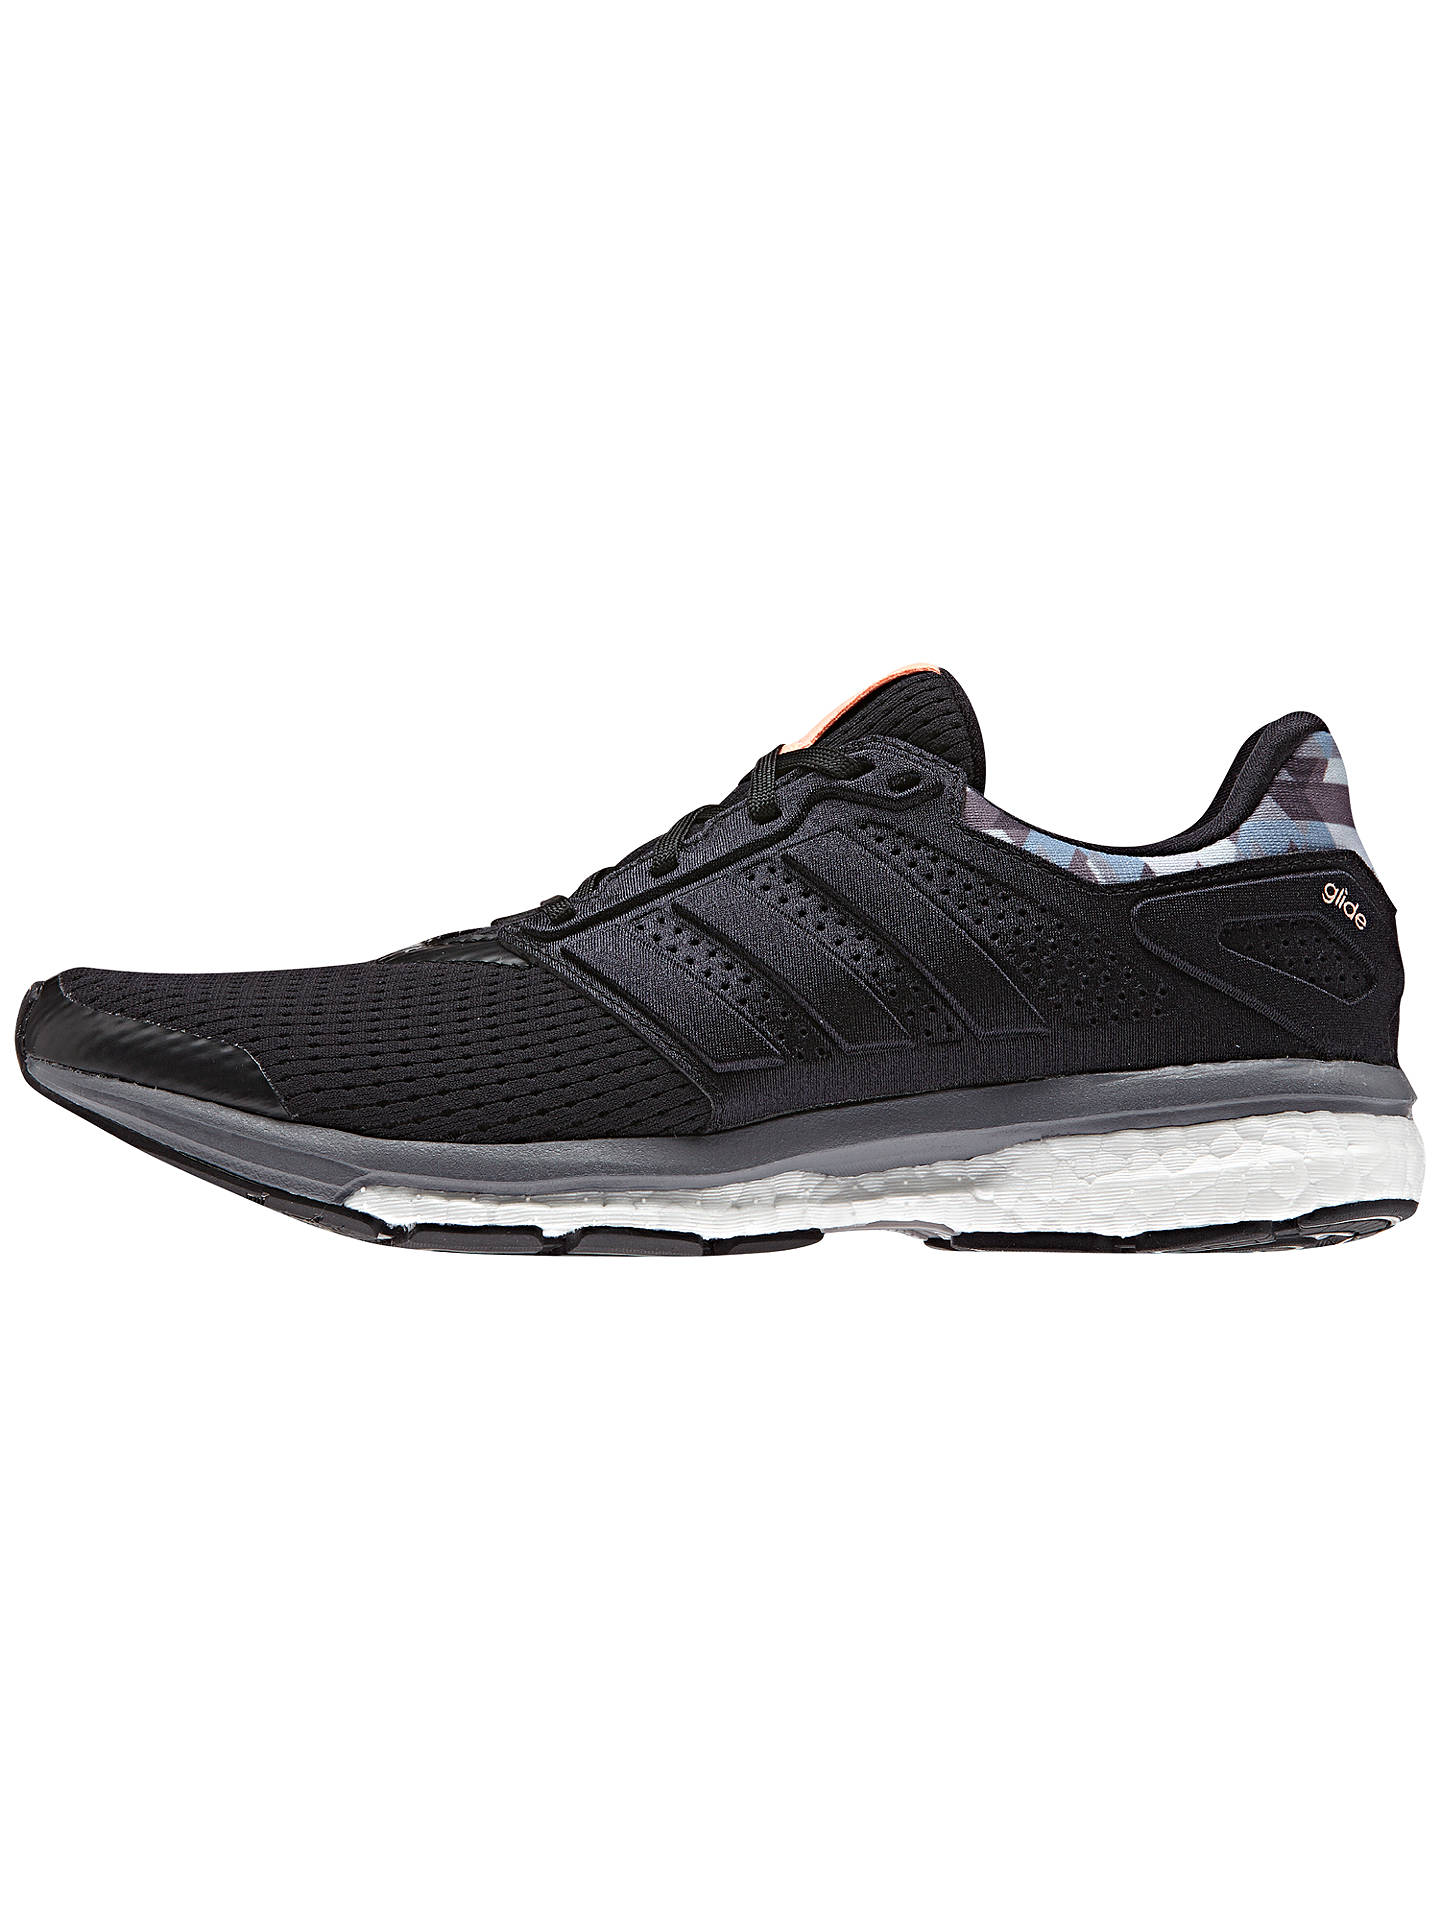 the best attitude f3aeb 19488 Buy Adidas Supernova Glide 8 Women s Running Shoes, Black, 4 Online at  johnlewis.